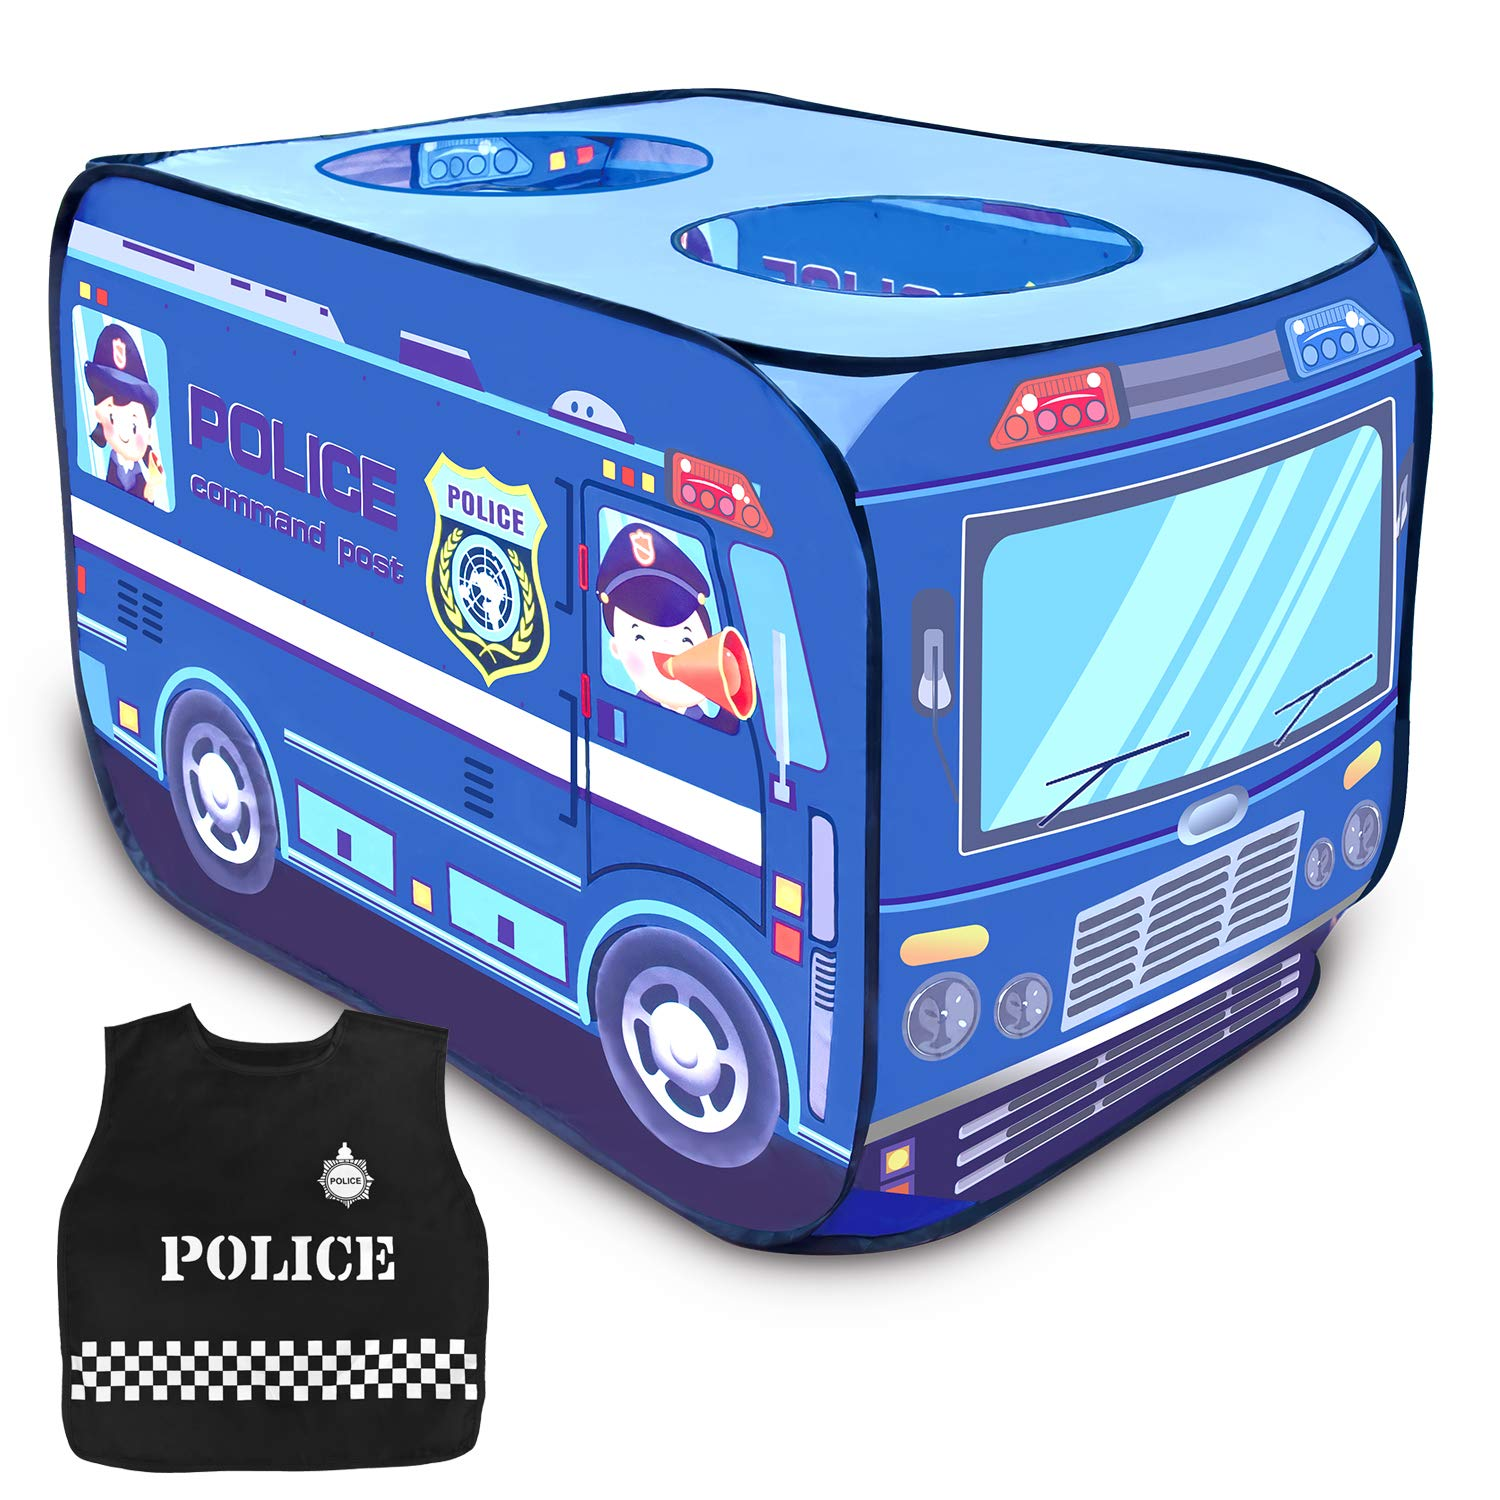 Police Toy Car Pop Up Play Tent for Kids with Policeman Costume, Kids Tent for Indoor & Outdoor